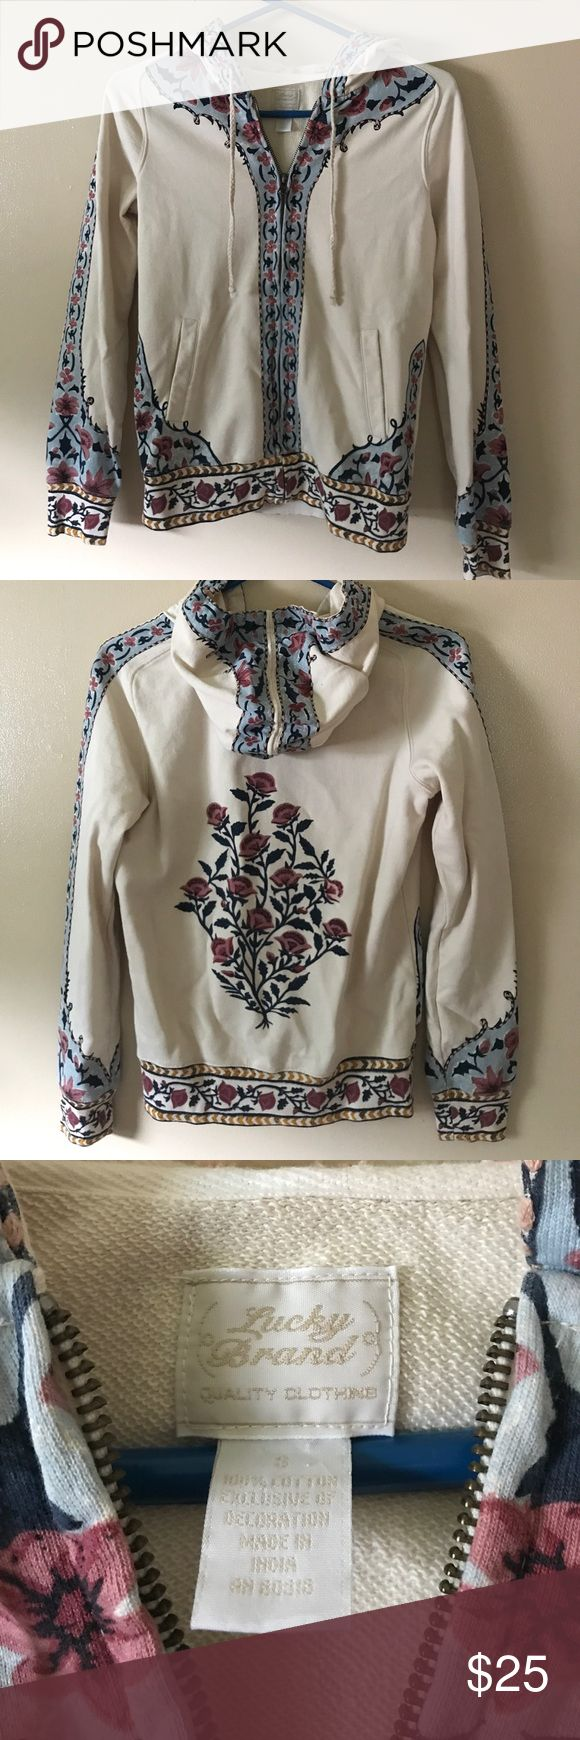 Lucky Brand floral hoodie Beautiful hand-painted style hoodie. Inner material is similar to terry cloth. The floral design keeps this piece classy and elegant but casual. EUC, no stains or flaws. Lucky Brand Tops Sweatshirts & Hoodies